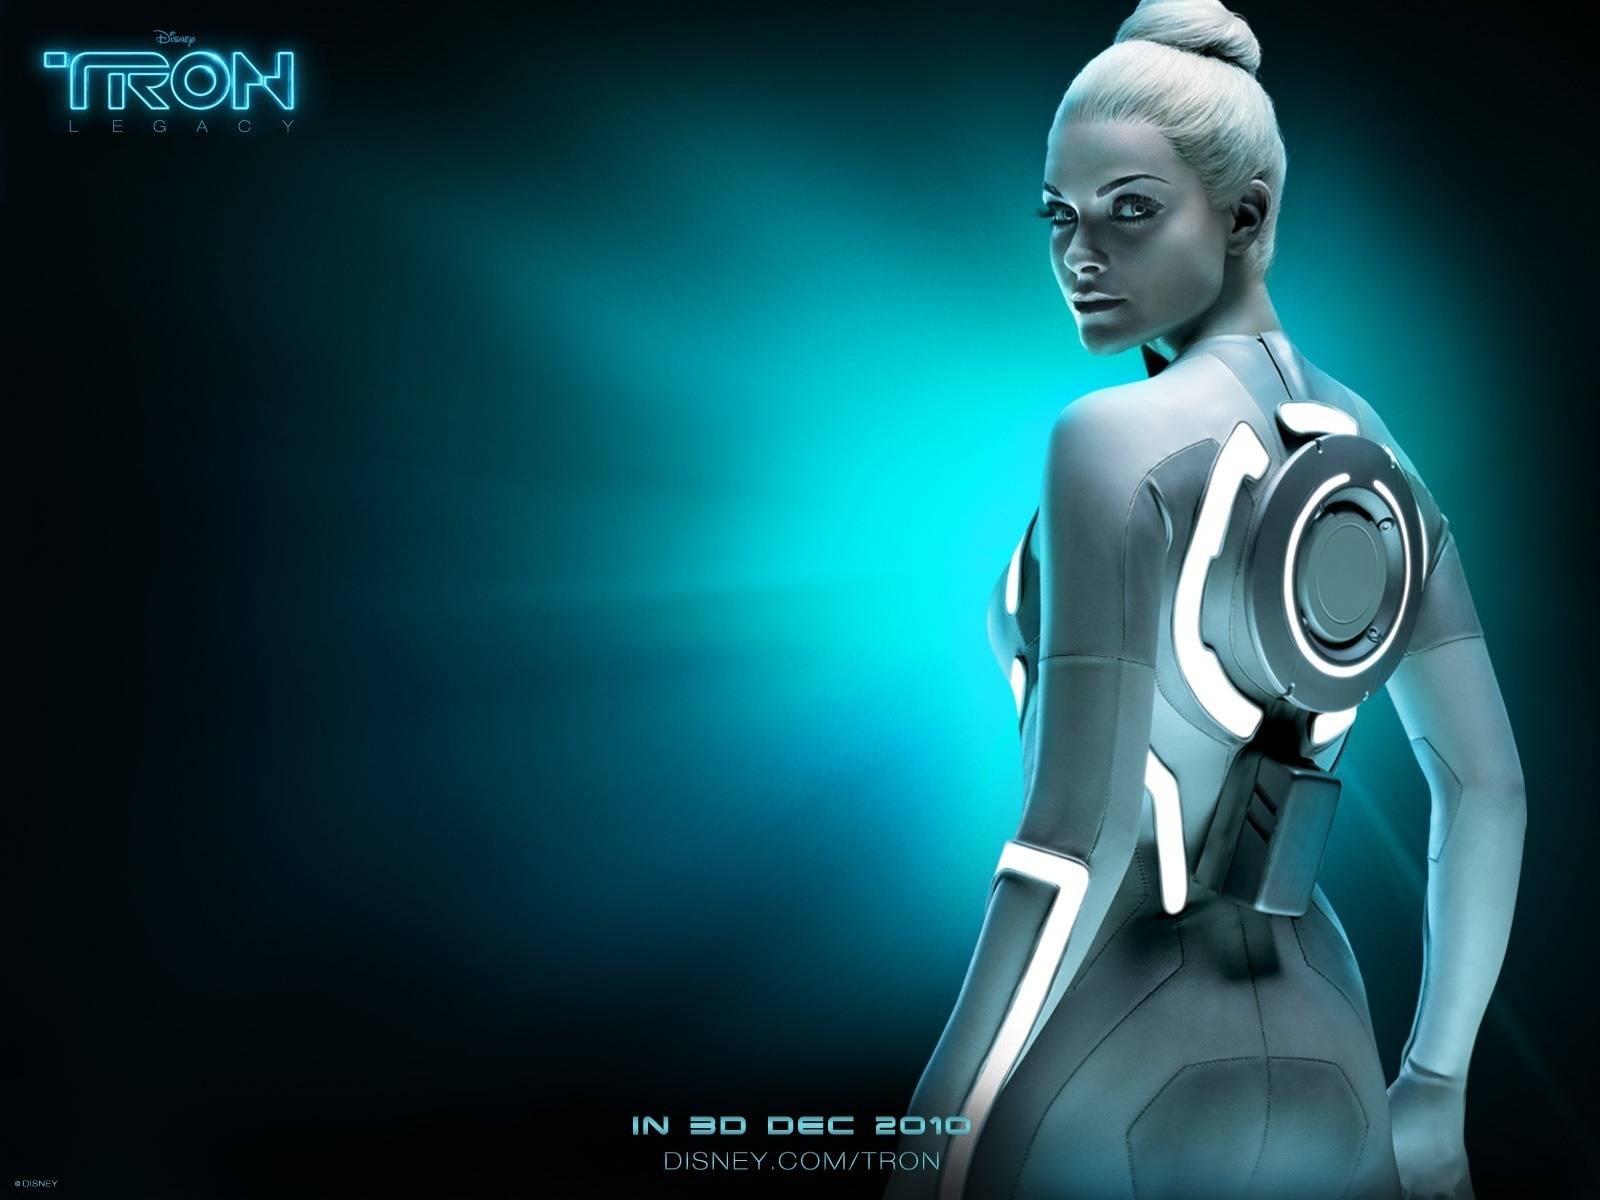 Tron Legacy Images Tron Legacy Hd Wallpaper And Background Photos 17866028